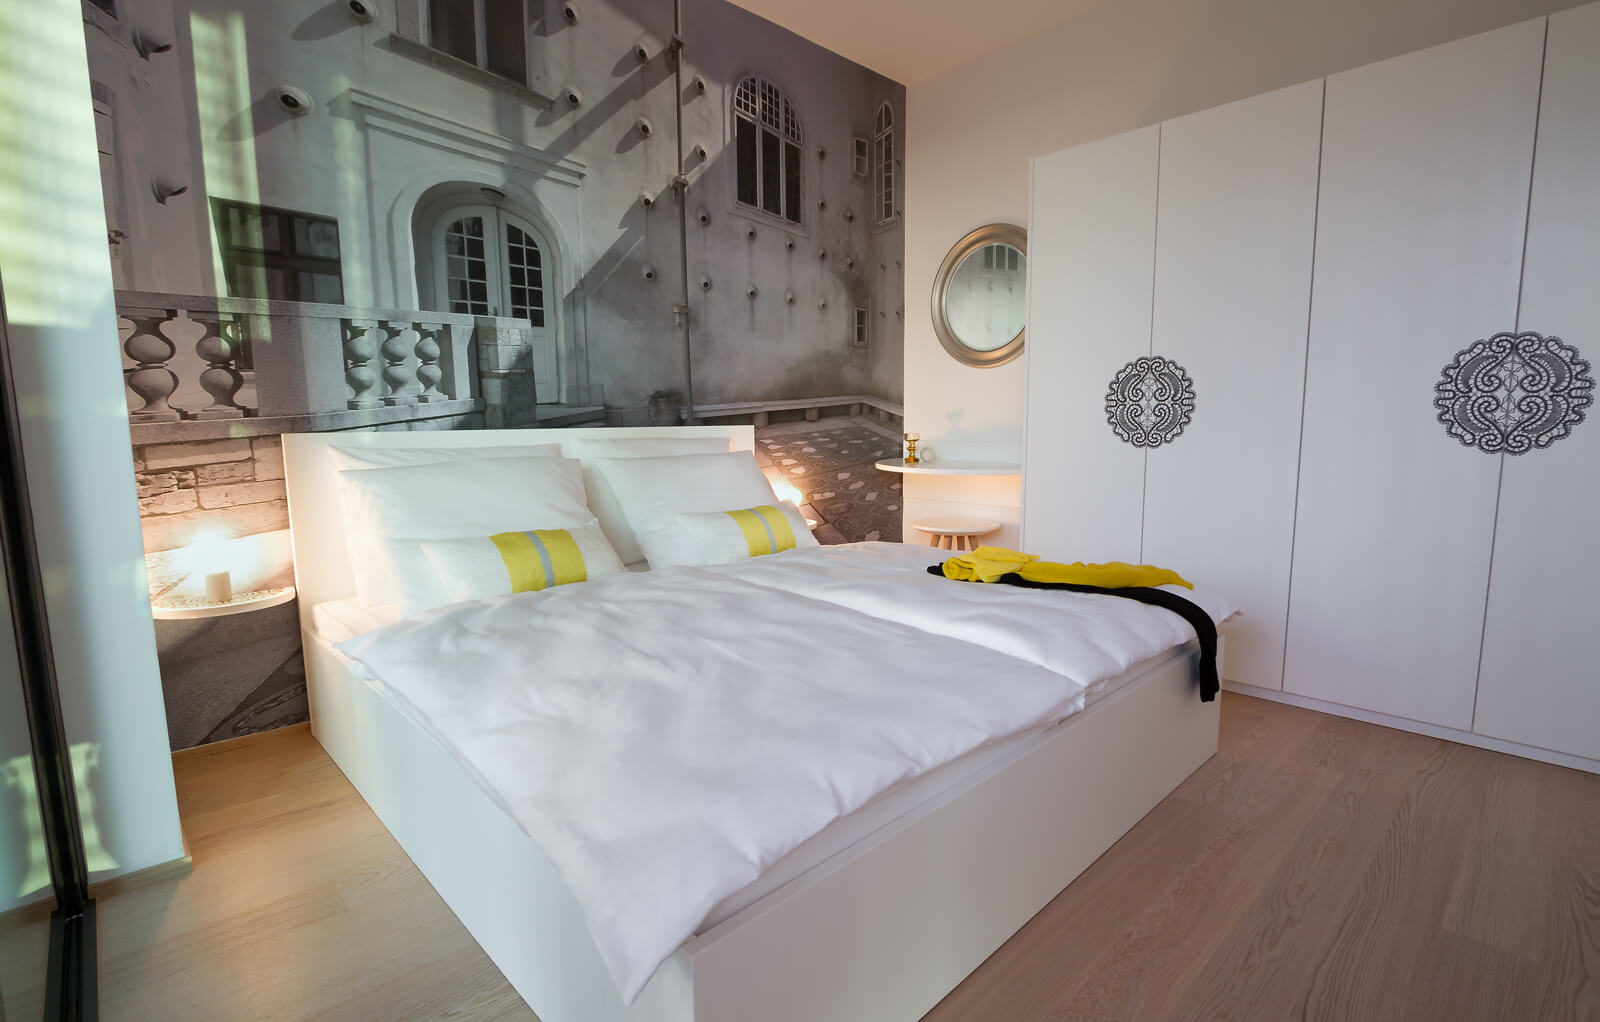 Small lighting shelves flank the bed, while white closet doors stand across, with art printed doors.